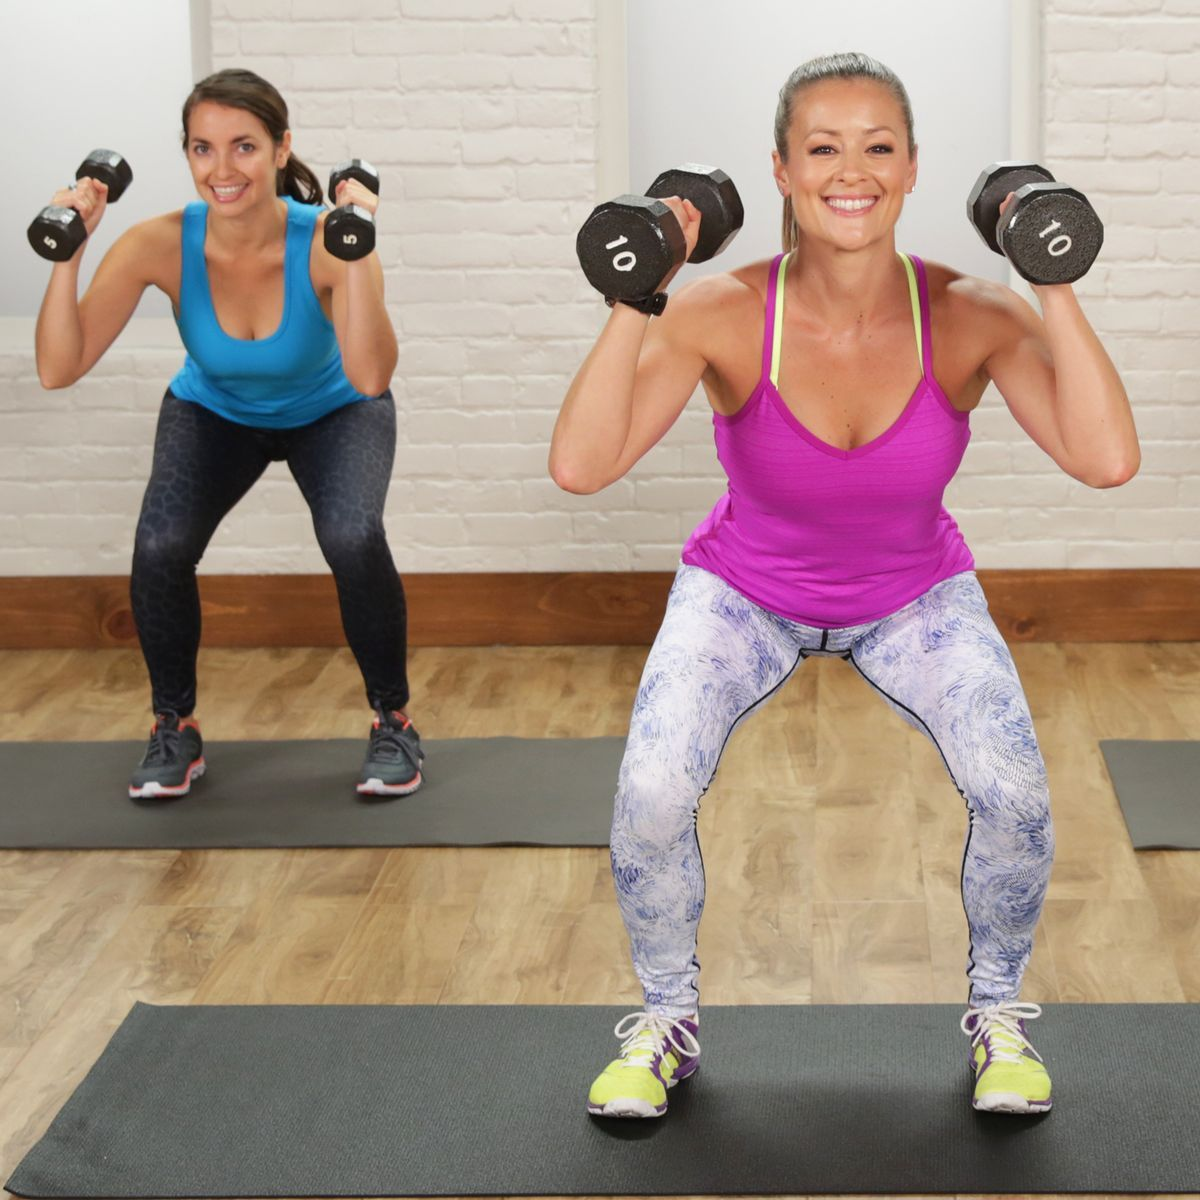 Completely bored with your old workouts? We've compiled 10 30-minute videos so you don't have to think one bit.